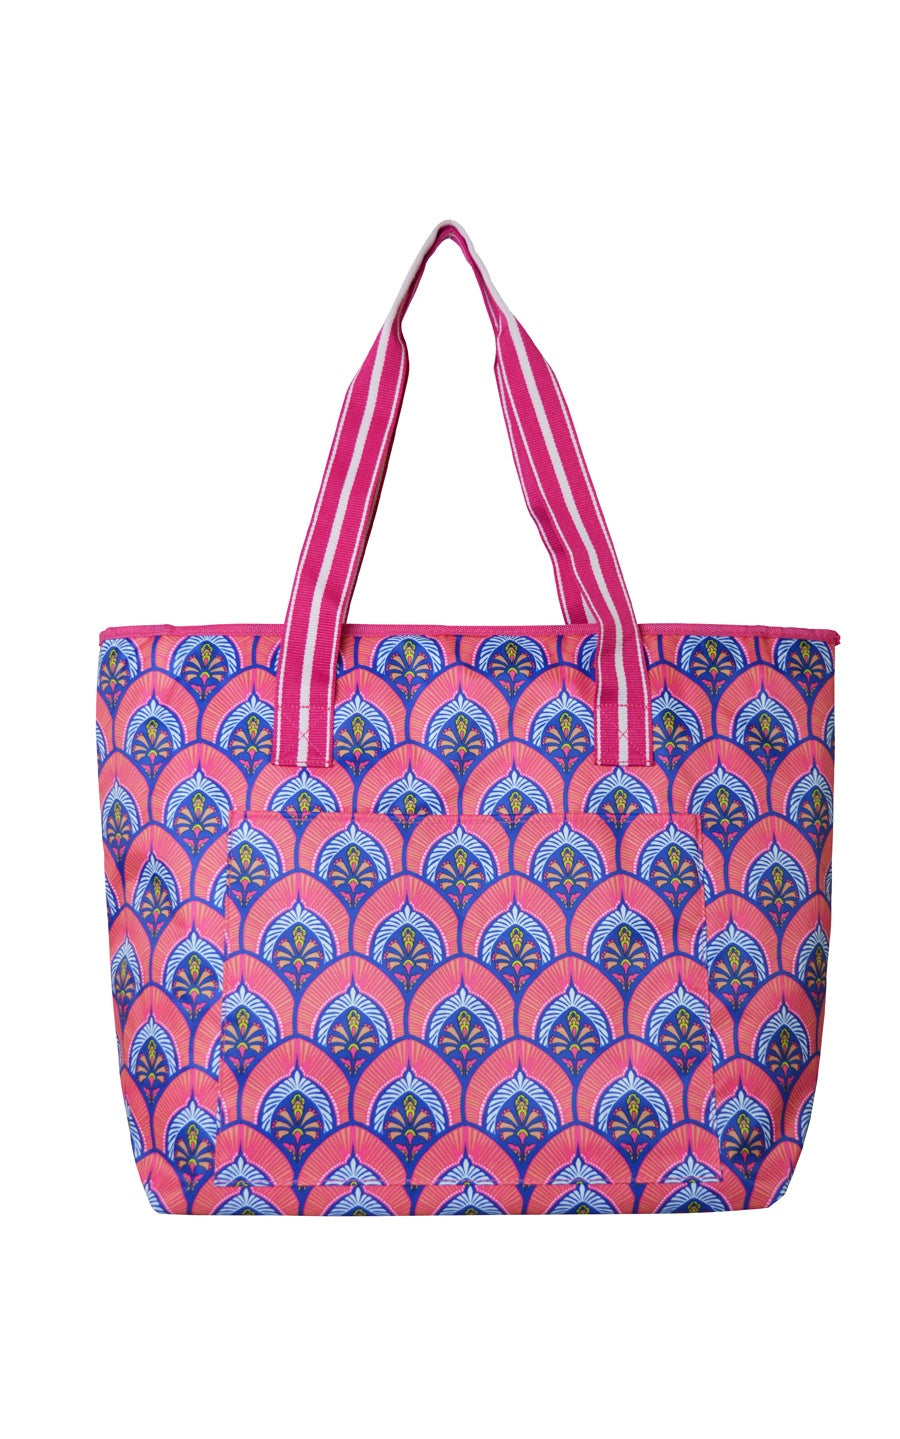 All For Color-Bali Blooms Cooler Tote - FINAL SALE-Cooler Bag